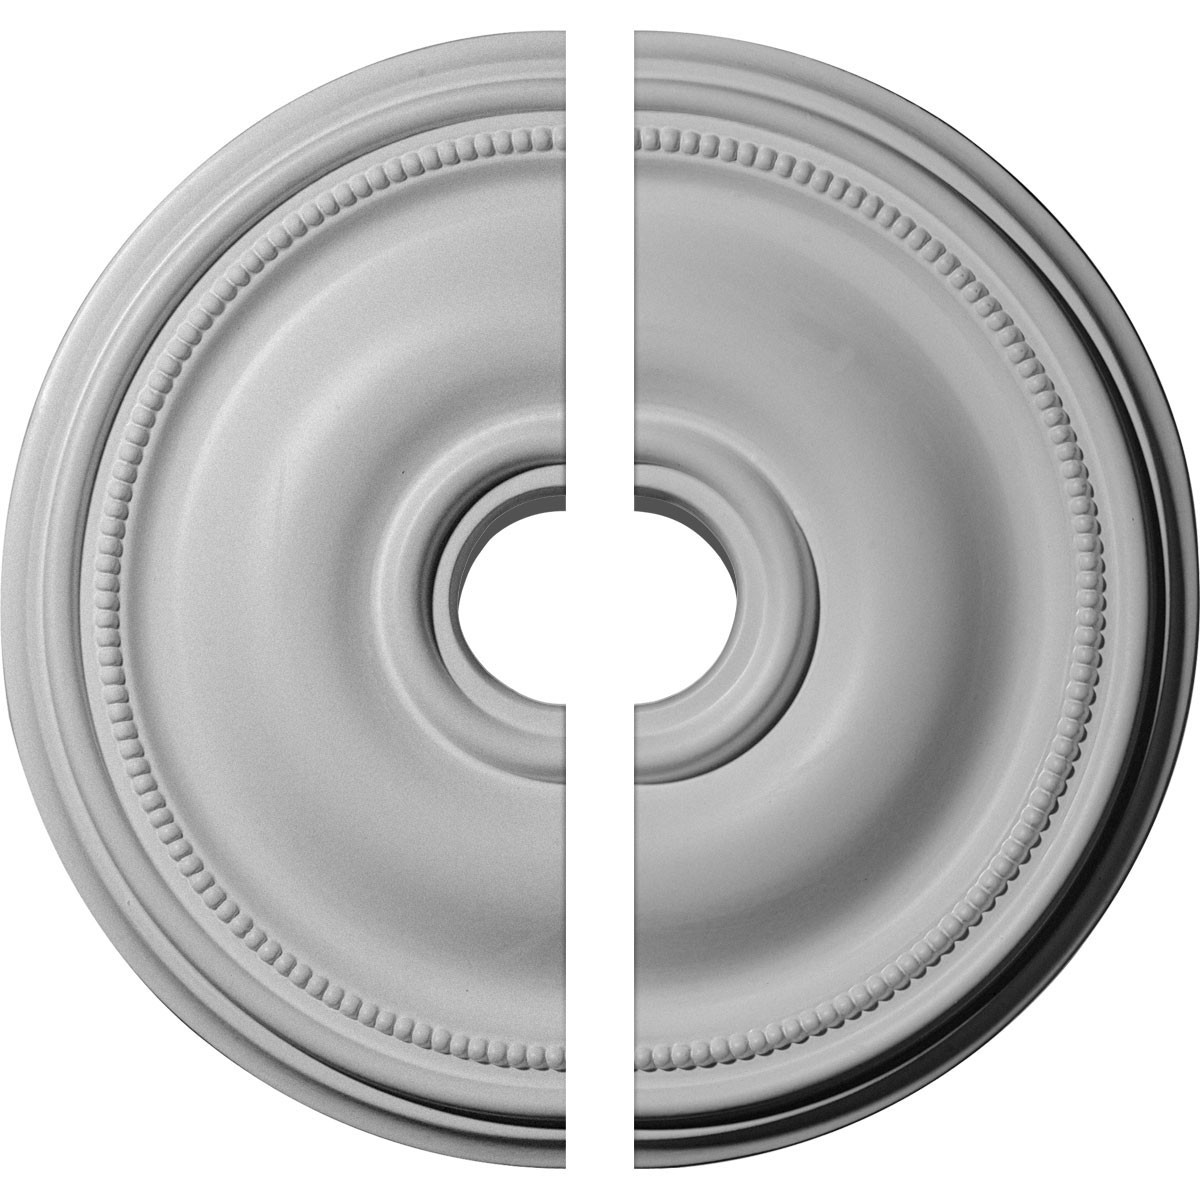 """EM-CM18BR2 - 18 1/8""""OD x 3 3/4""""ID x 1 1/8""""P Bradford Ceiling Medallion, Two Piece (Fits Canopies up to 4 3/8"""")"""